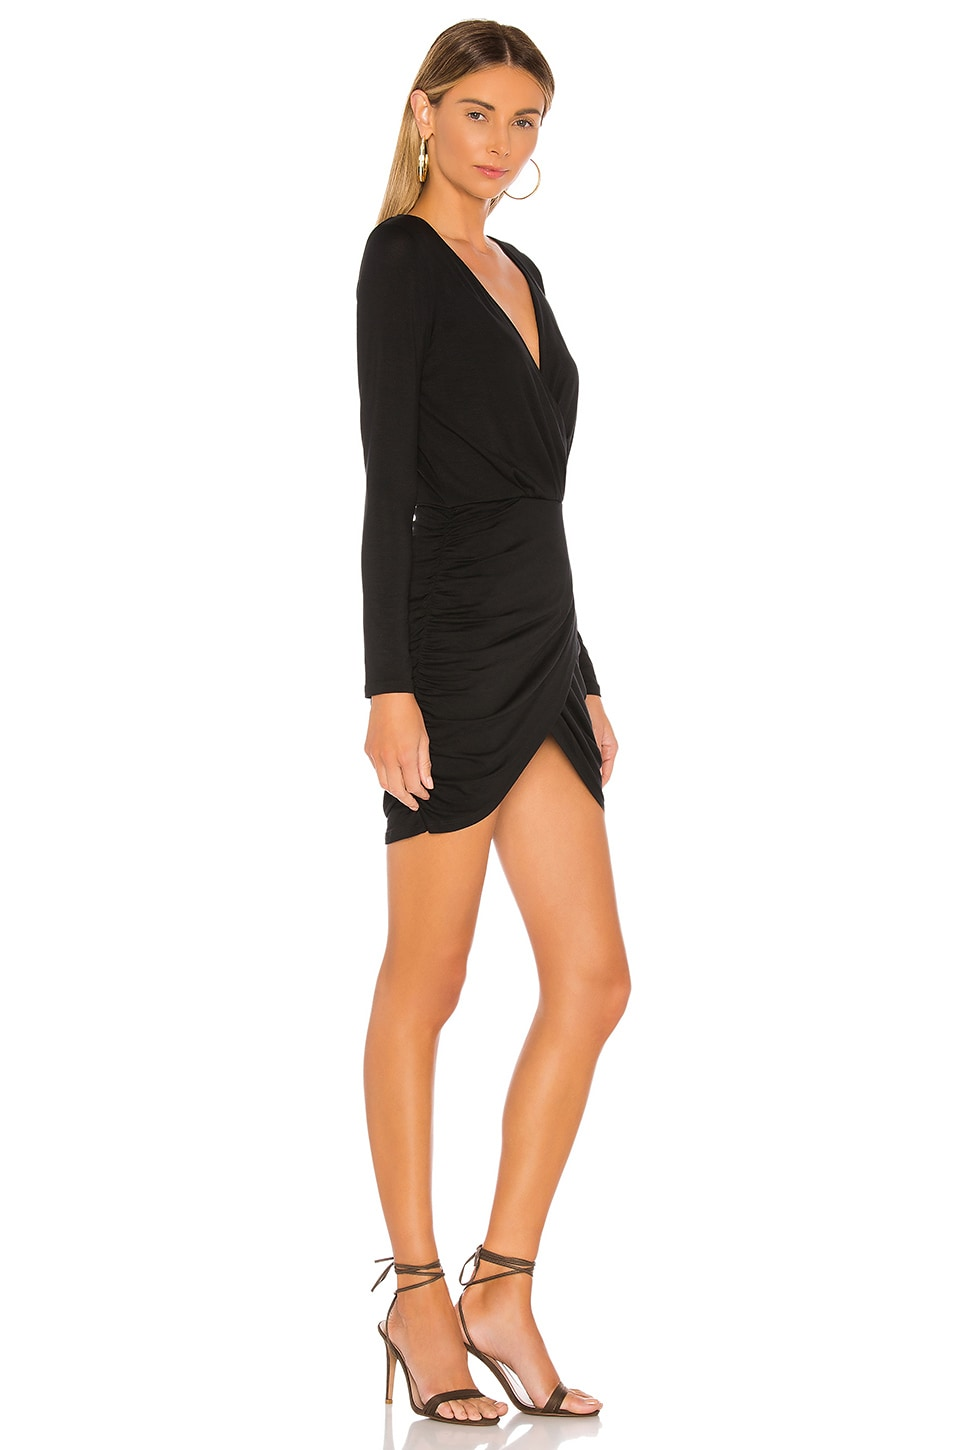 Taryn Mini Dress, view 2, click to view large image.